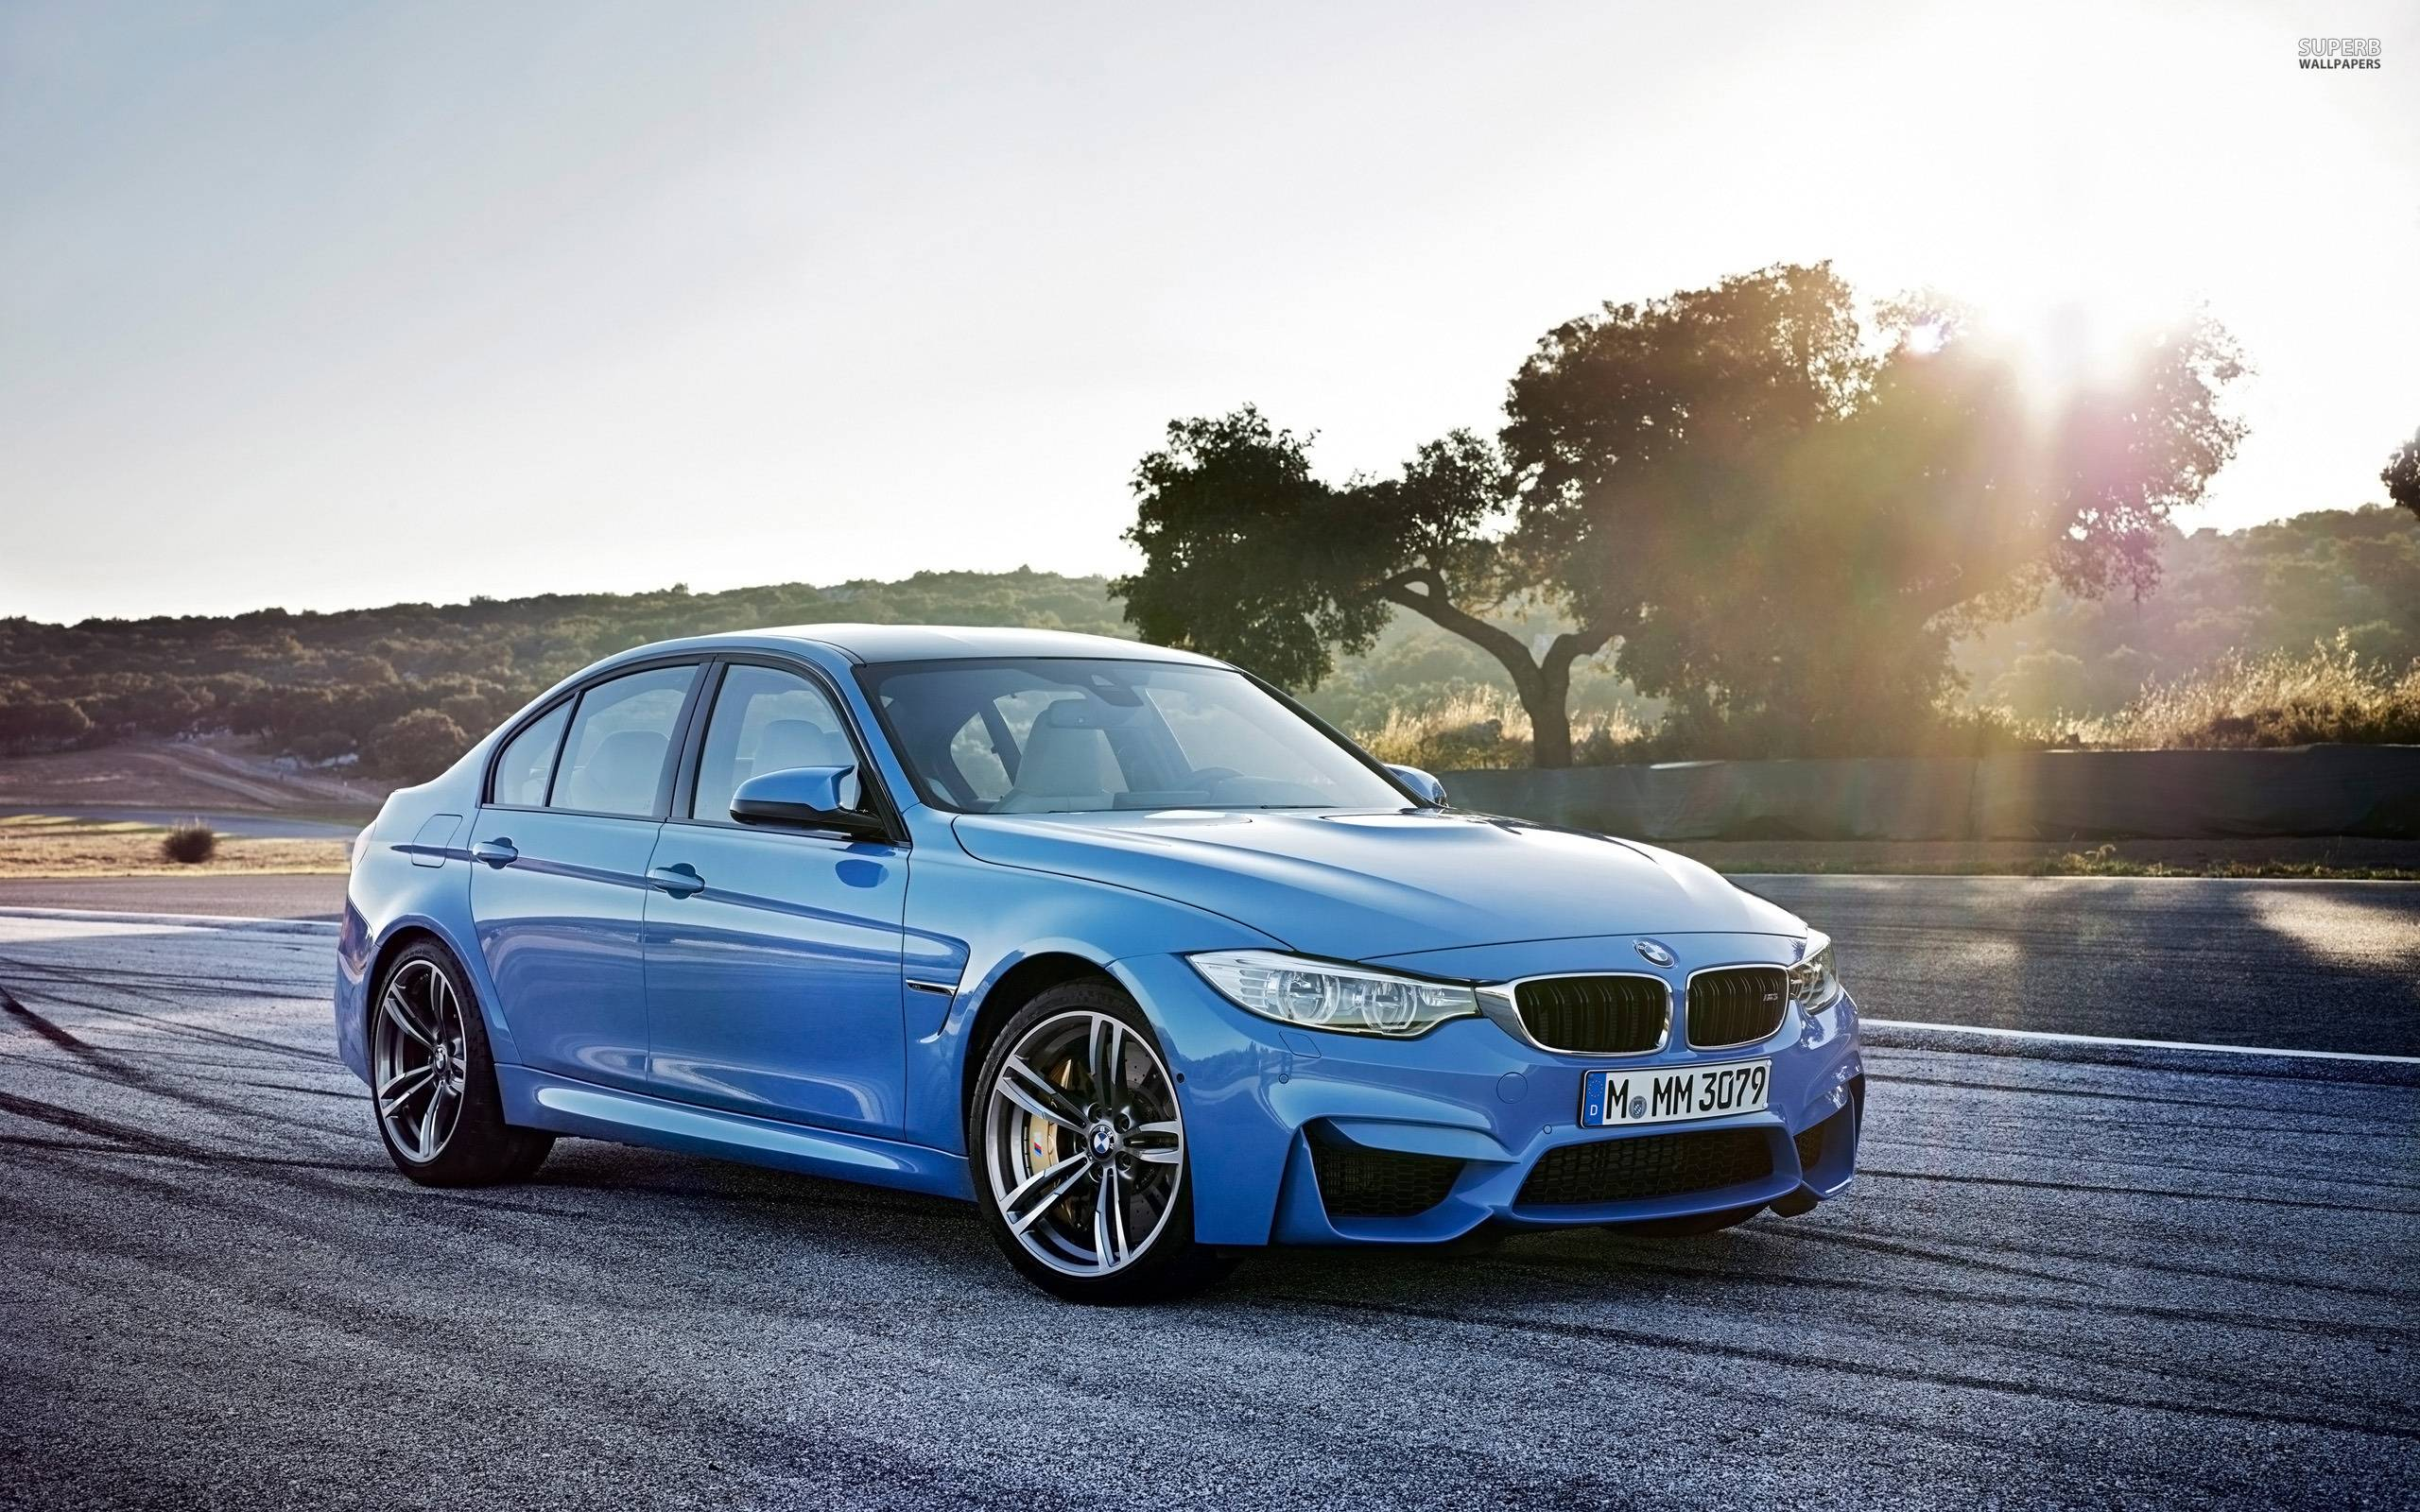 2014 BMW M3 Sedan wallpapers